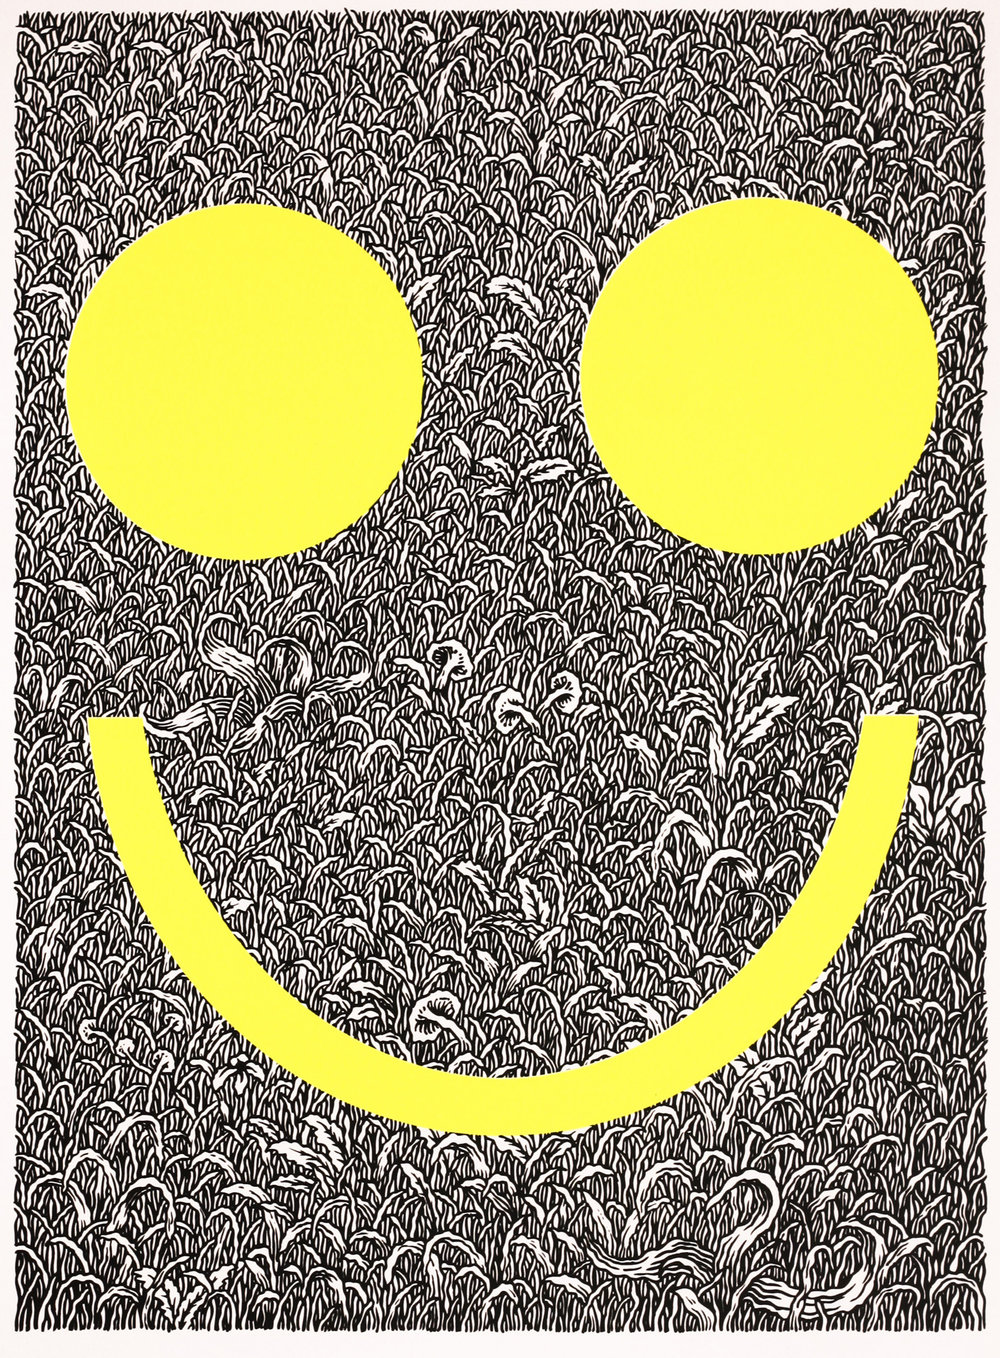 Tyler Krasowski   Smiless   screenprint  2014